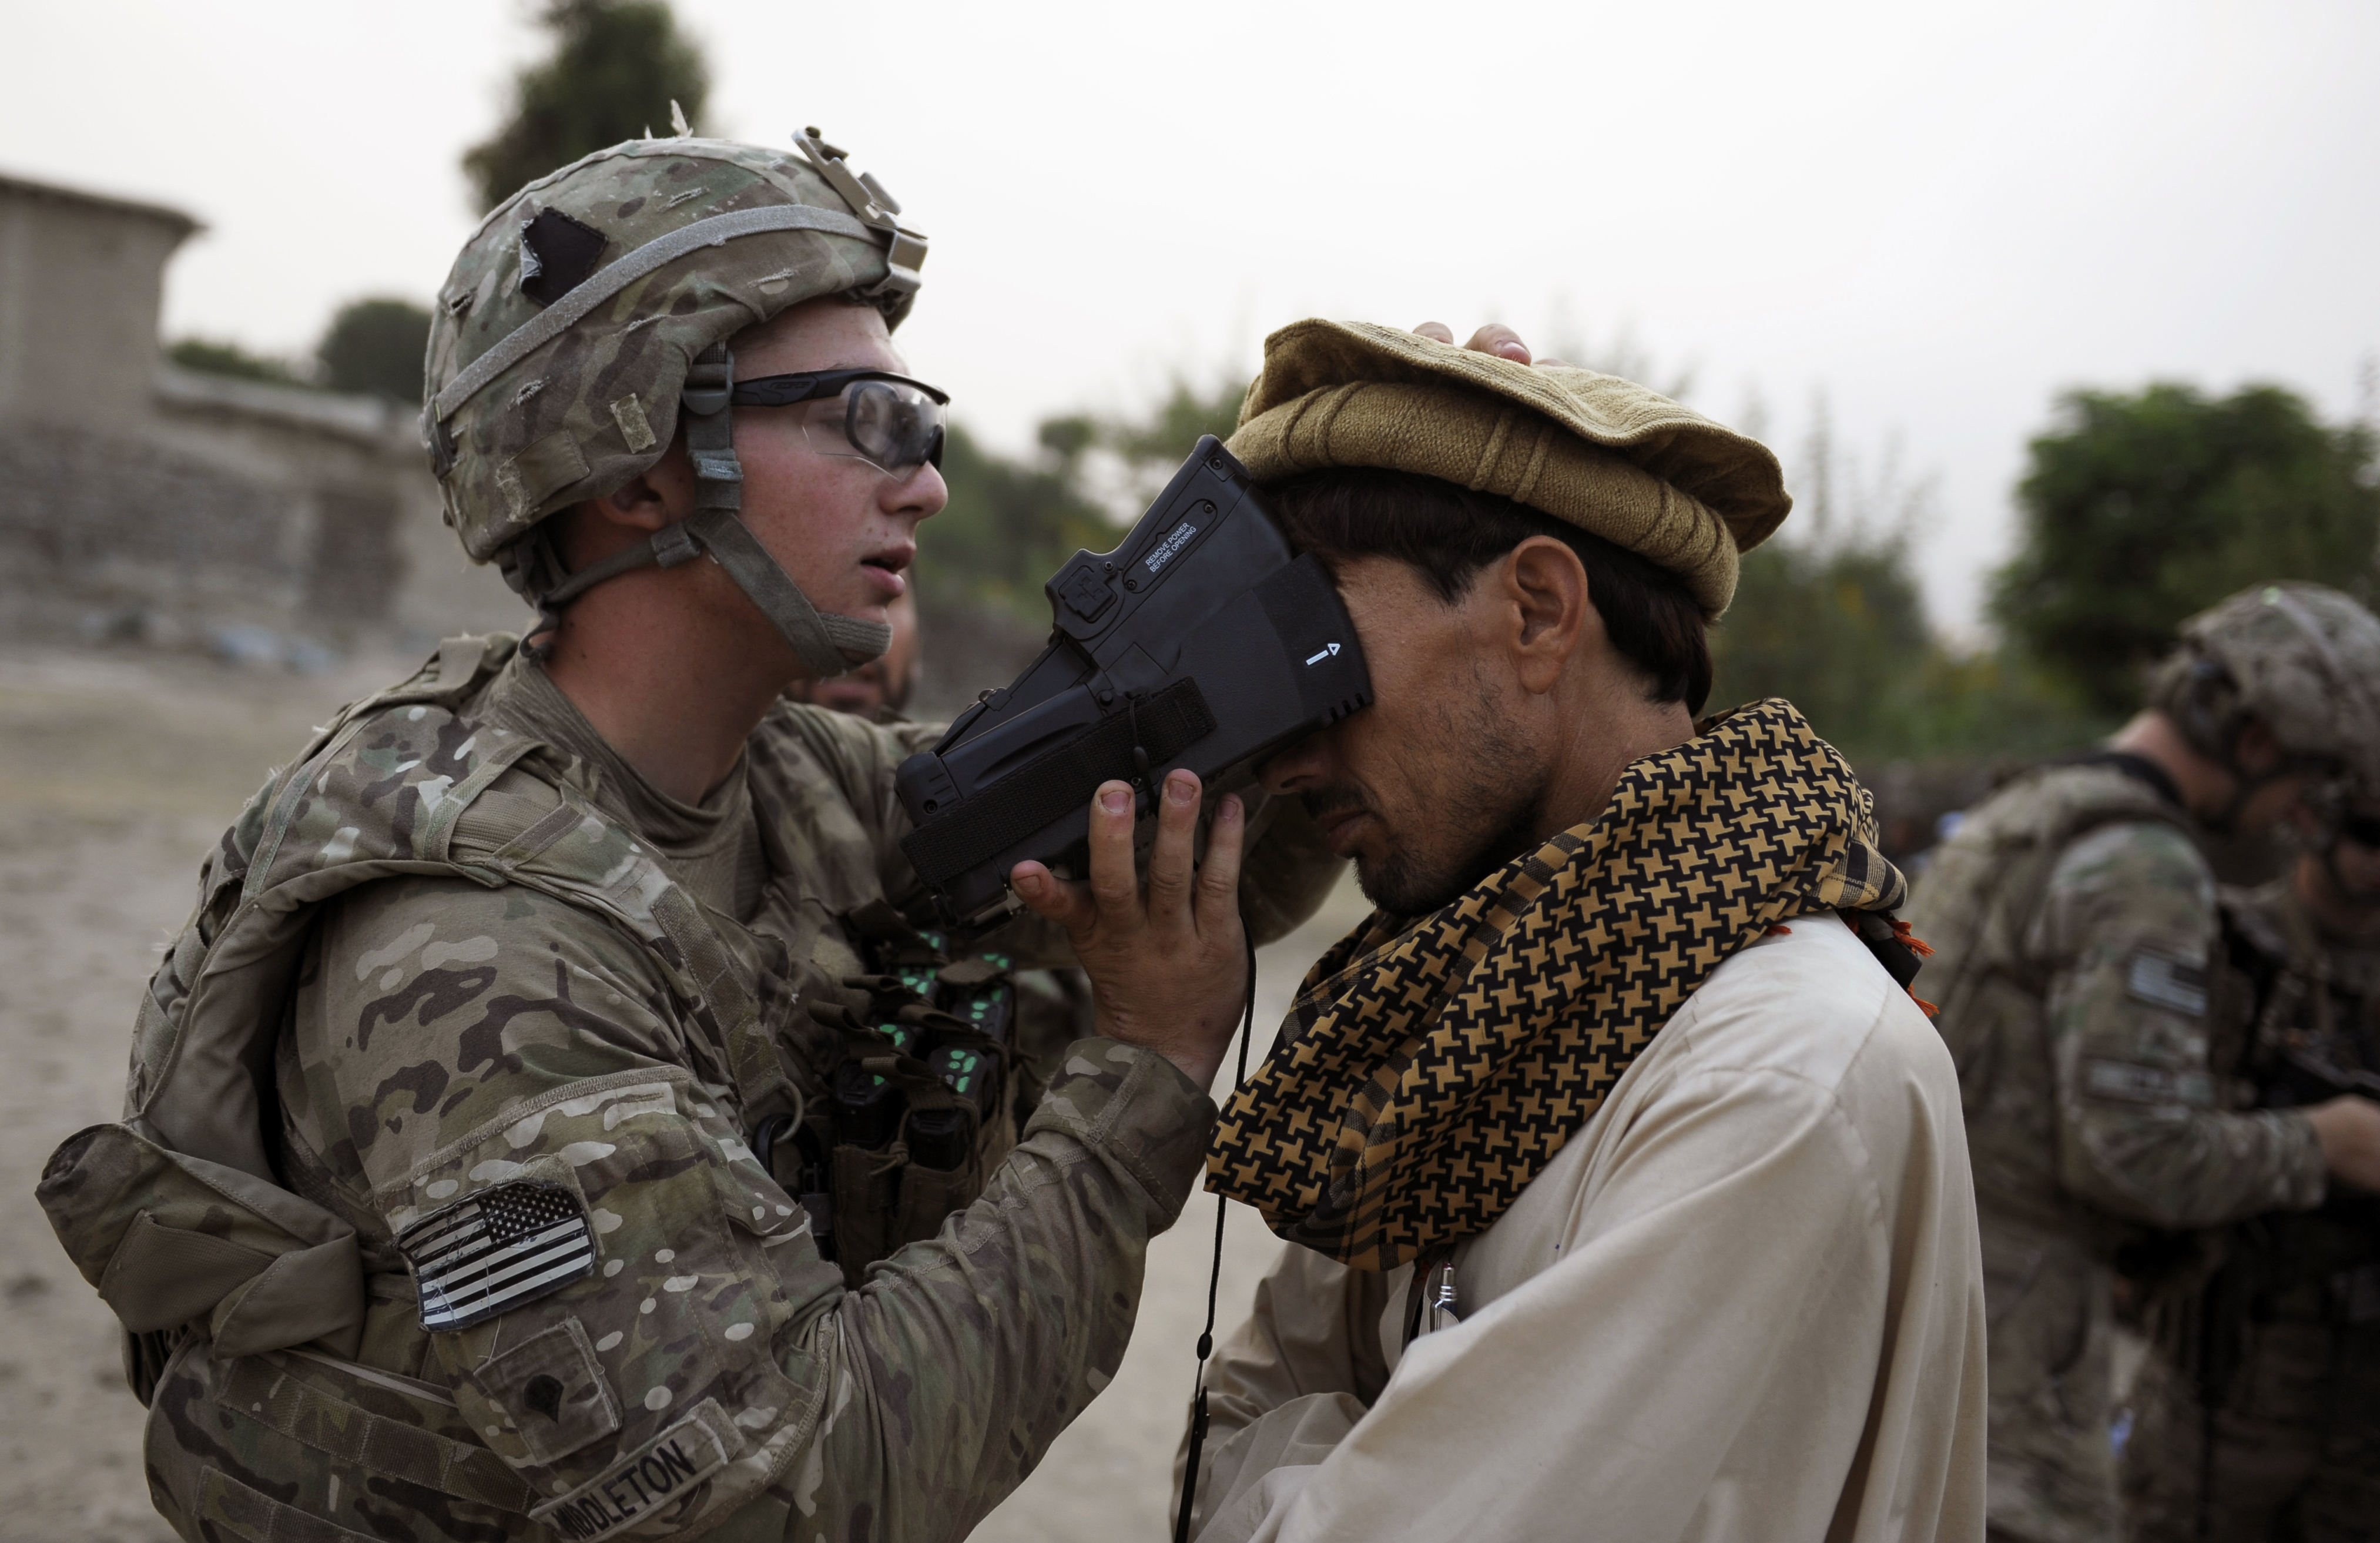 The Taliban Reportedly Have Control of U.S. Biometric Devices – a Lesson in Life-And-Death Consequences of Data Privacy